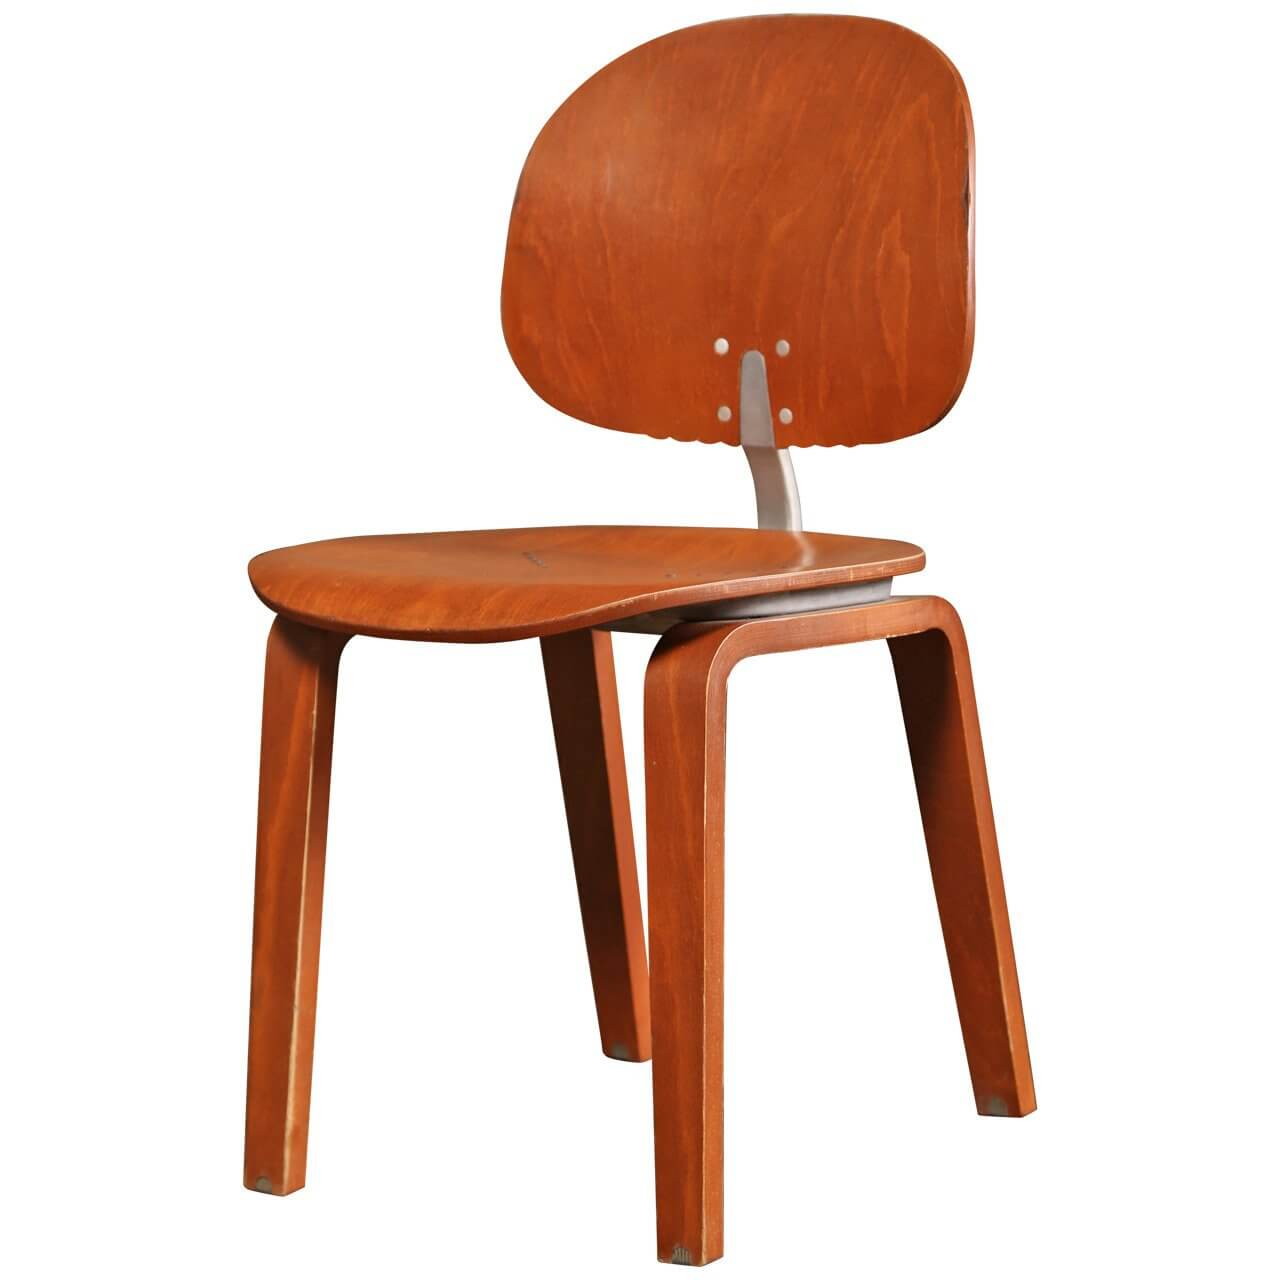 Bent Plywood Chair Piretti Xylon Bent Plywood Chair 35 Available Vintage